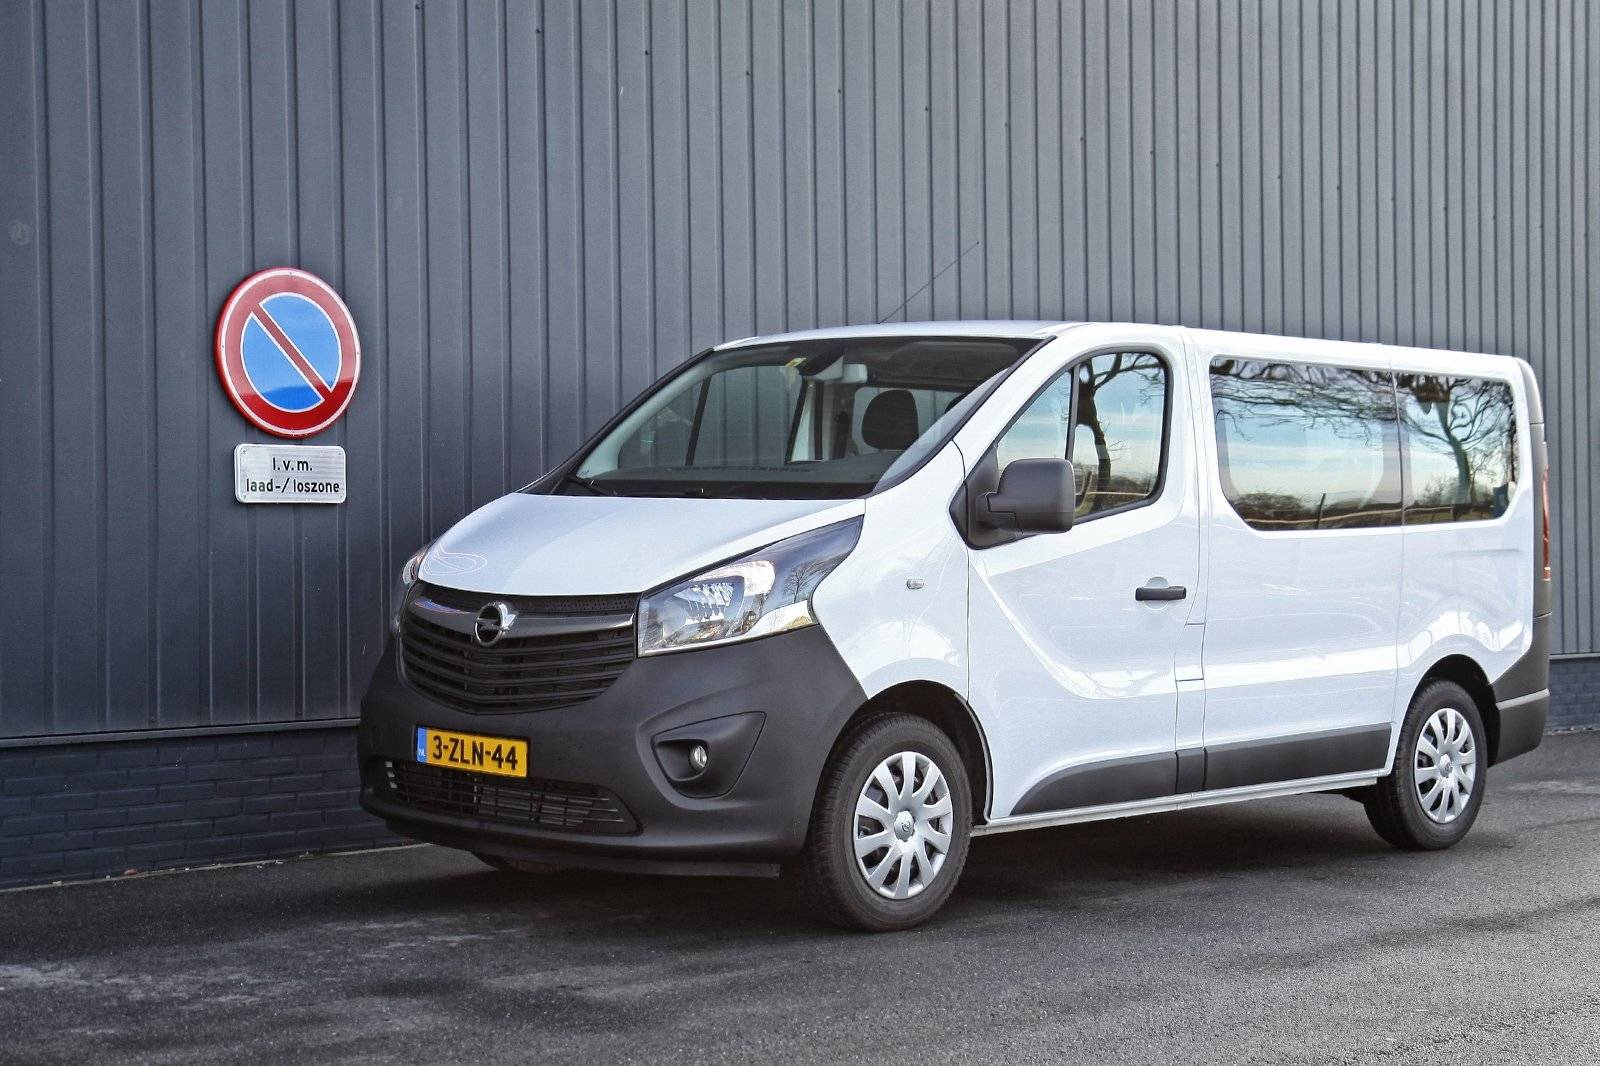 test autotest opel vivaro combi autotests. Black Bedroom Furniture Sets. Home Design Ideas